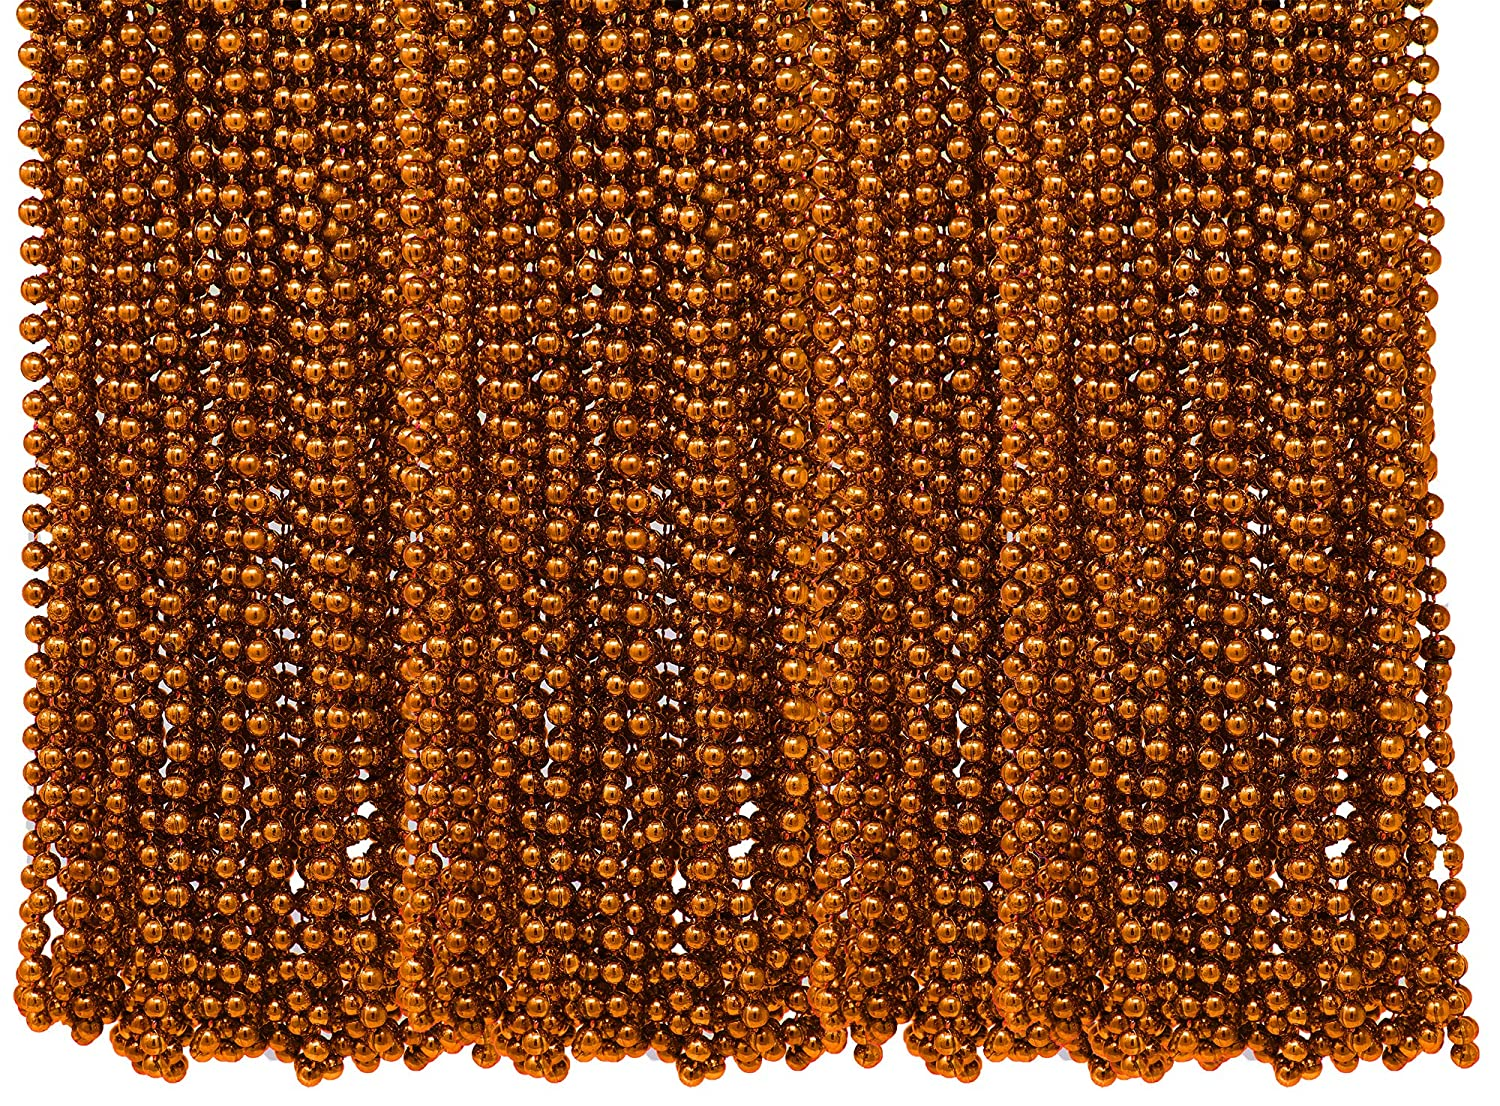 Trick or Treat Party Favors Great for Halloween Costume Accessory Supplies 4Es Novelty Bulk Pack of 72 Orange Beads Necklace 33 Inches Long 7mm Thick Mardi Gras